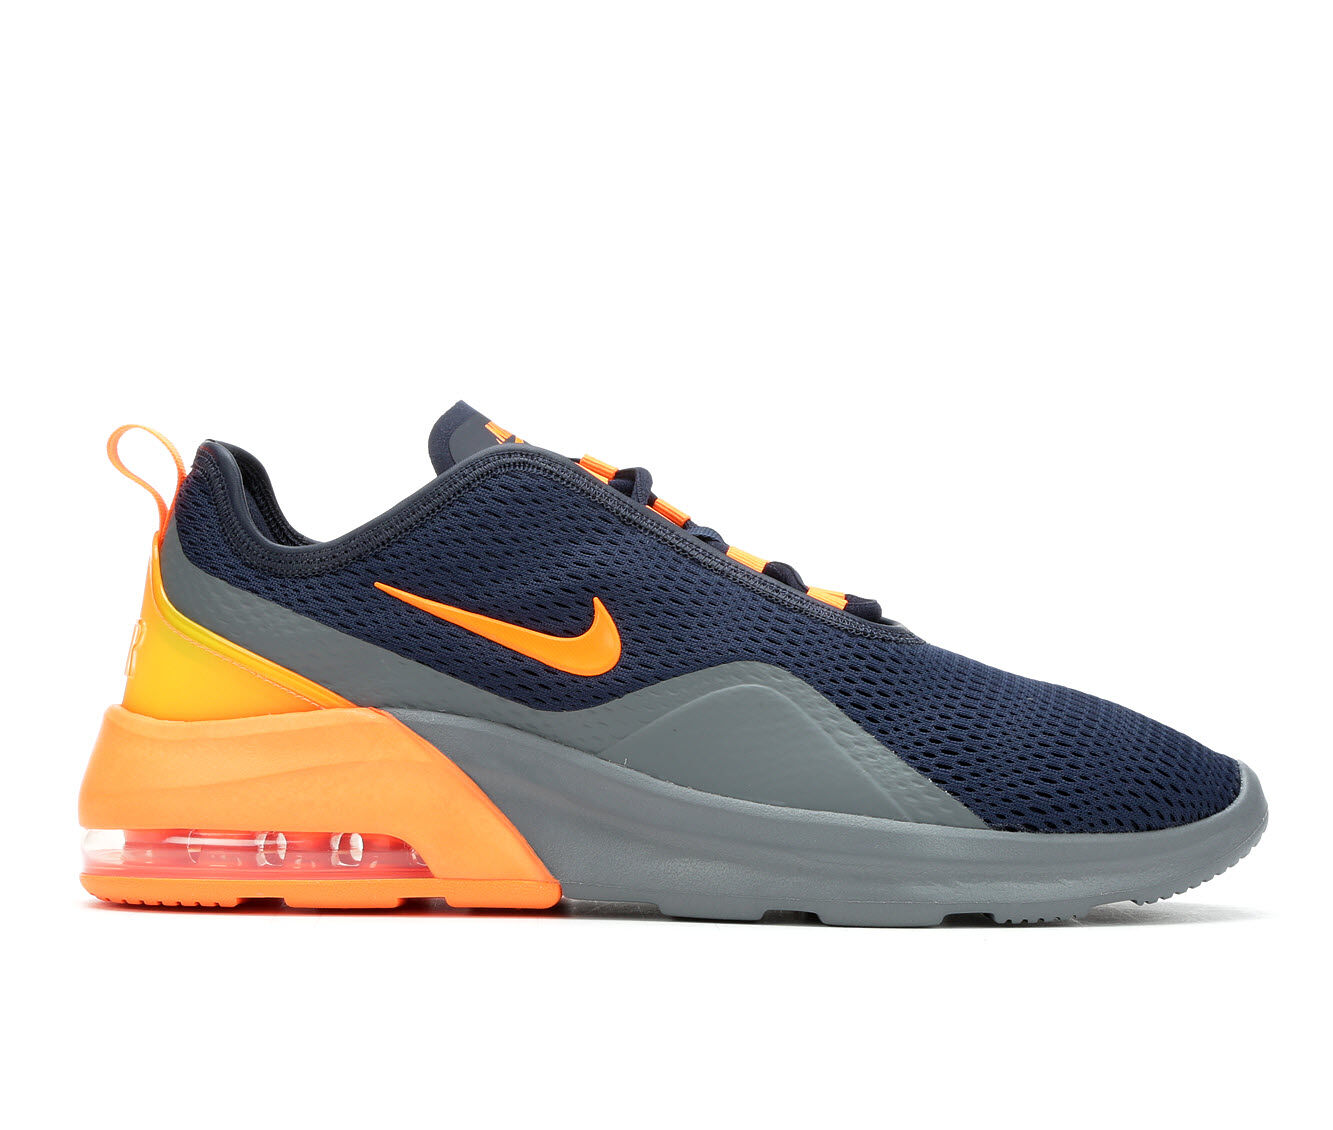 Men's Nike Air Max Motion 2 Sneakers Obsid/Gy/Org